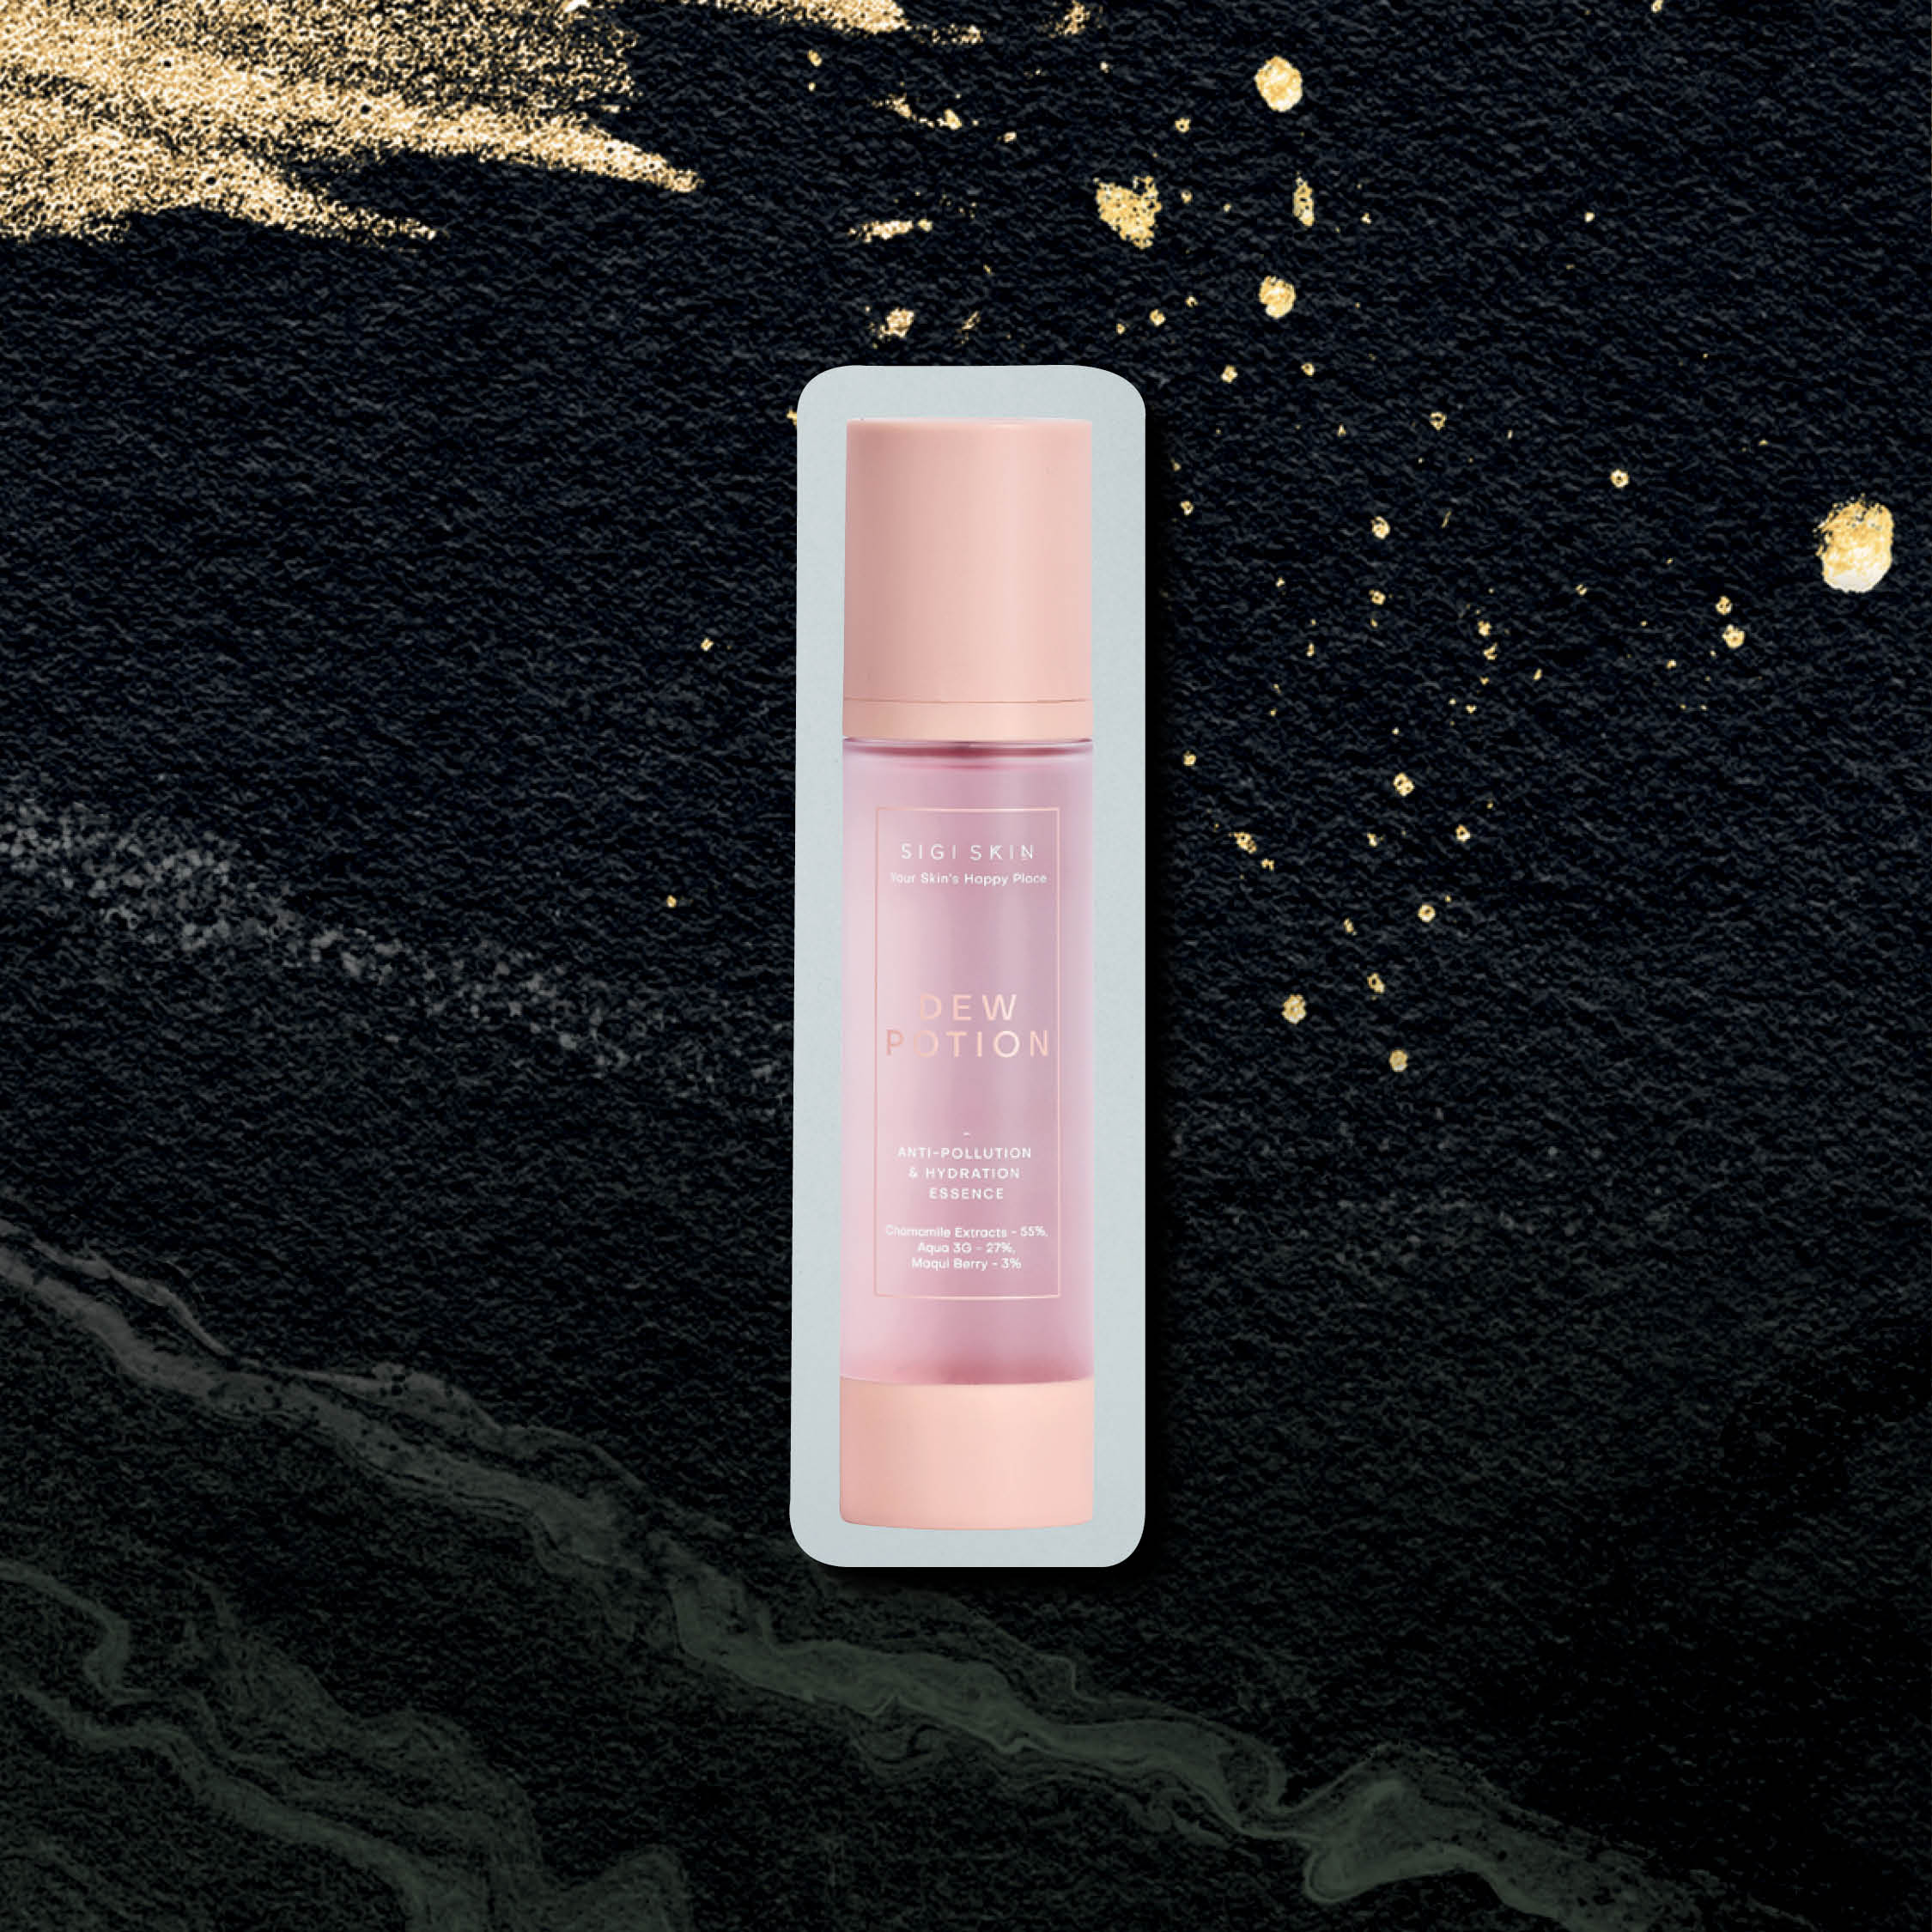 Grooming Awards 2020 - Best Toners/Mists for Normal Skin. Art Direction: Jonathan Tai